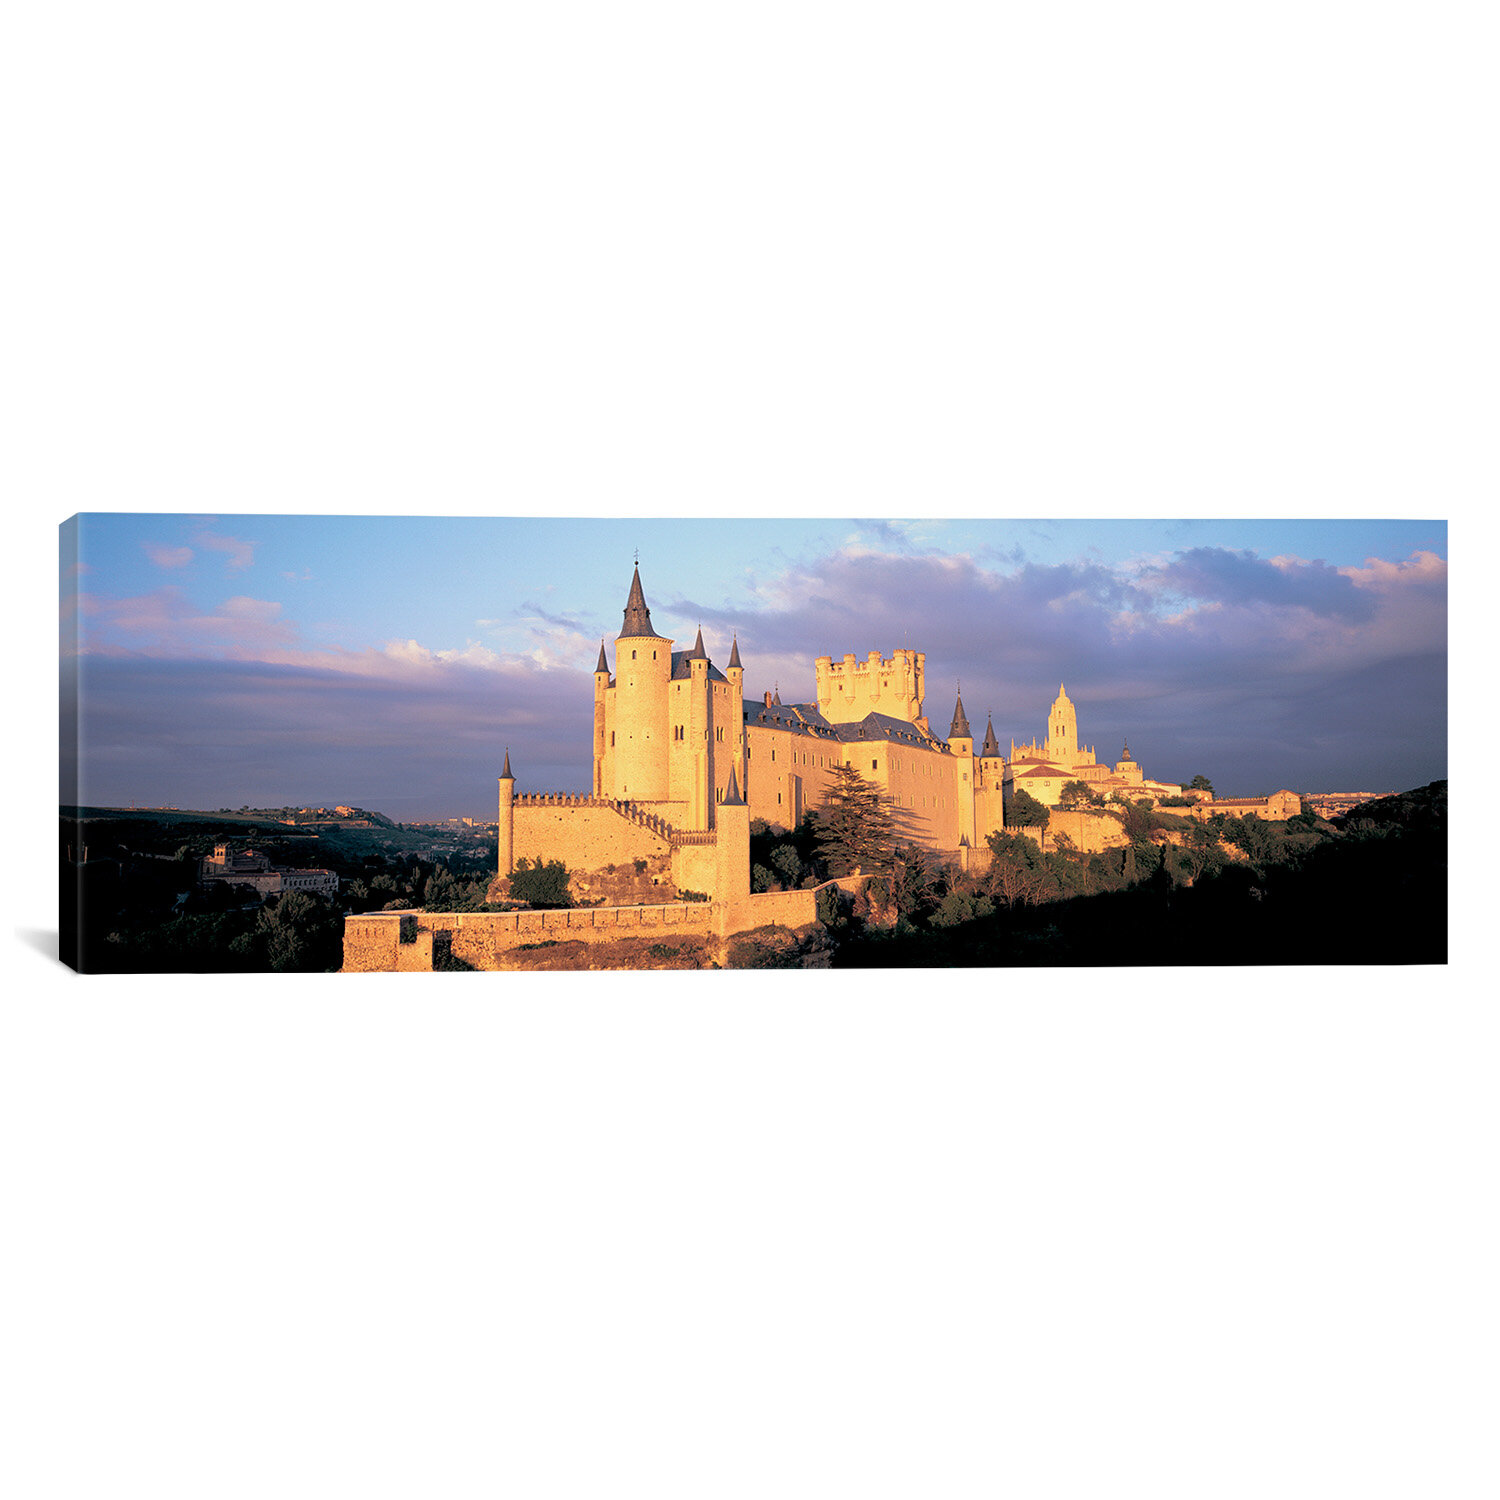 Ebern Designs Panoramic Alcazar Castle Old Castile Segovia Spain Photographic Print On Canvas Wayfair